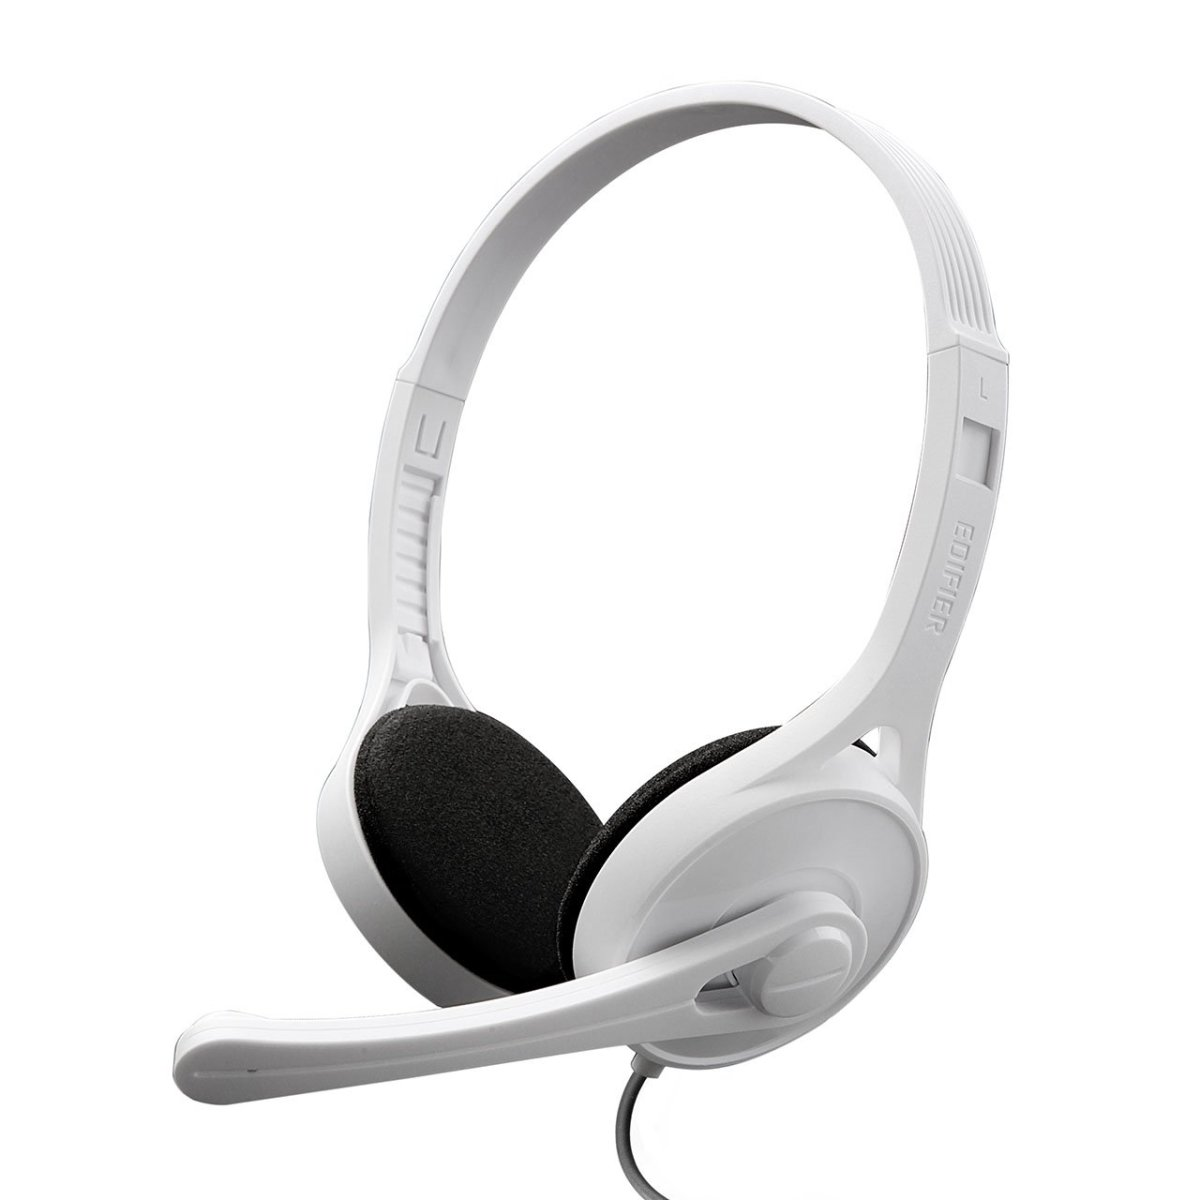 Edifier K550 On-Ear Headphones (White) with Microphone